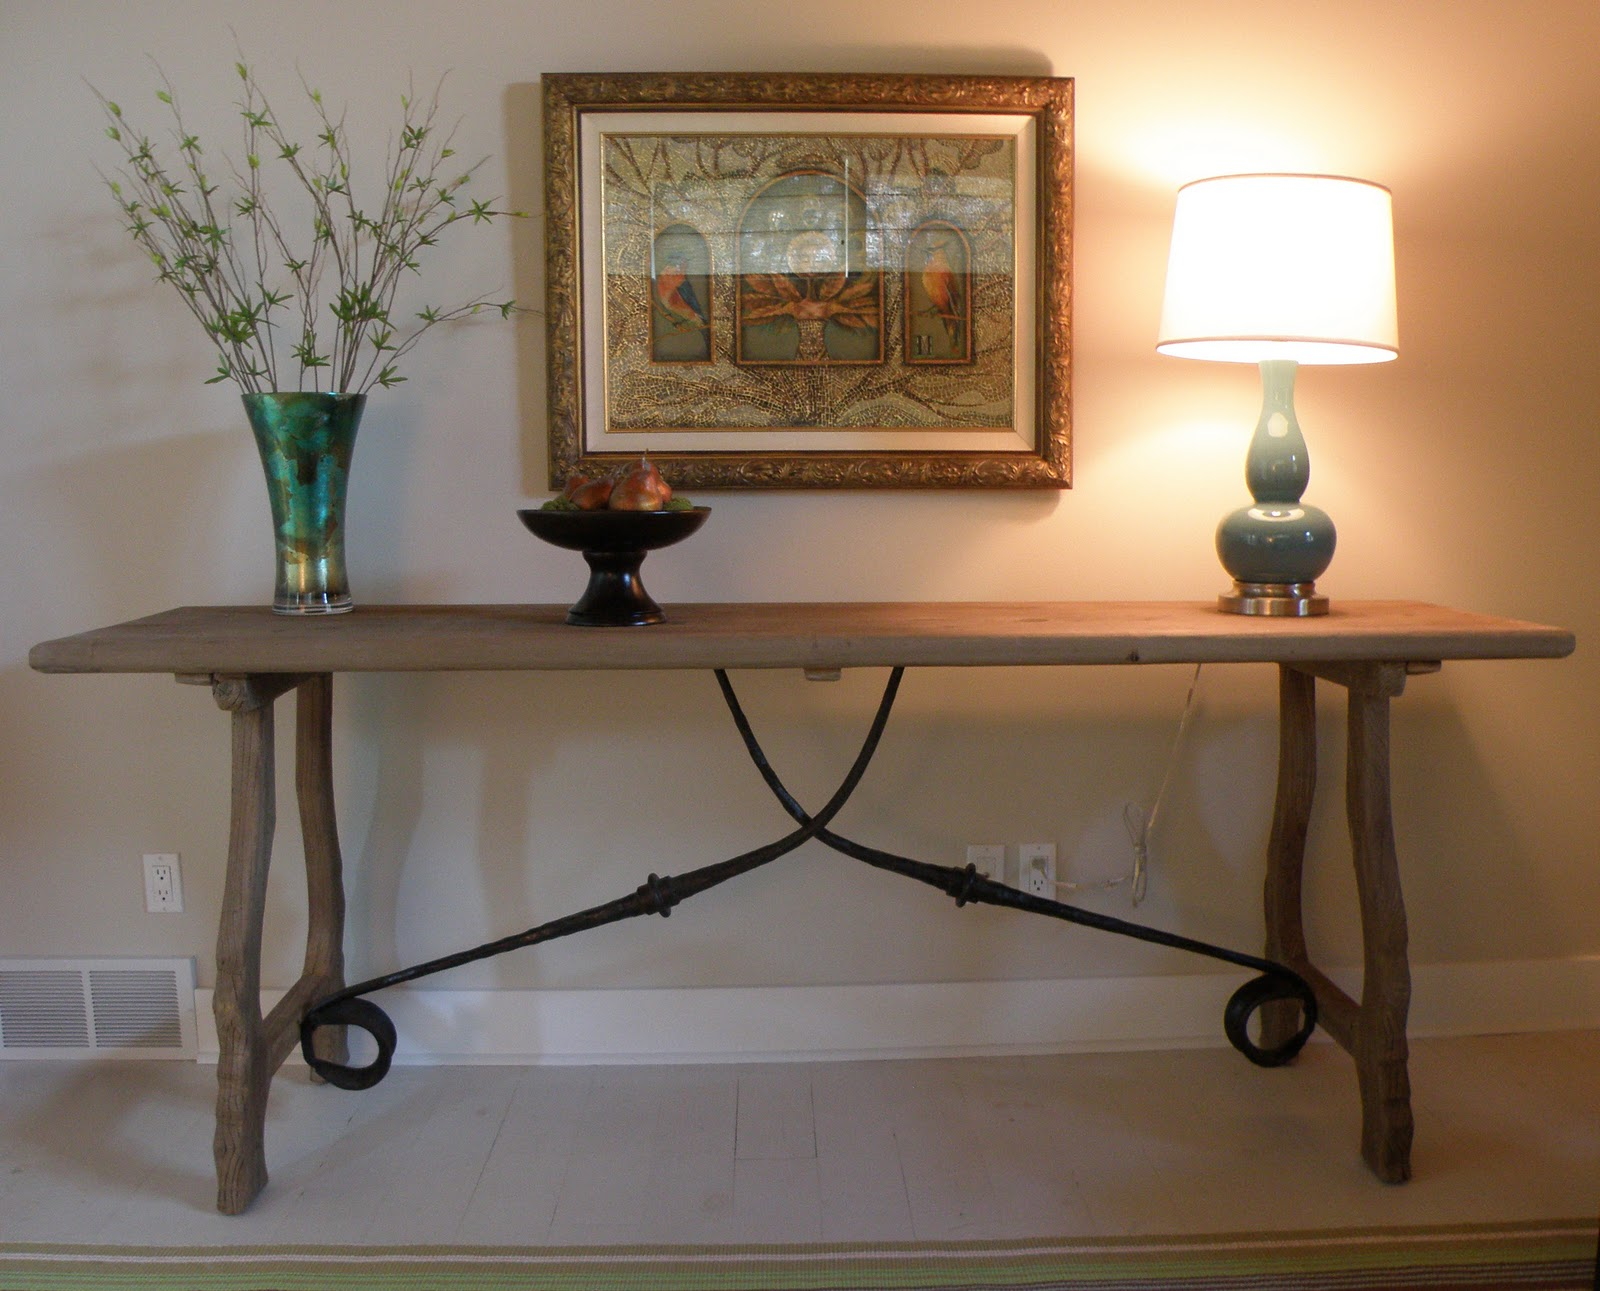 Our Trestle Console Table